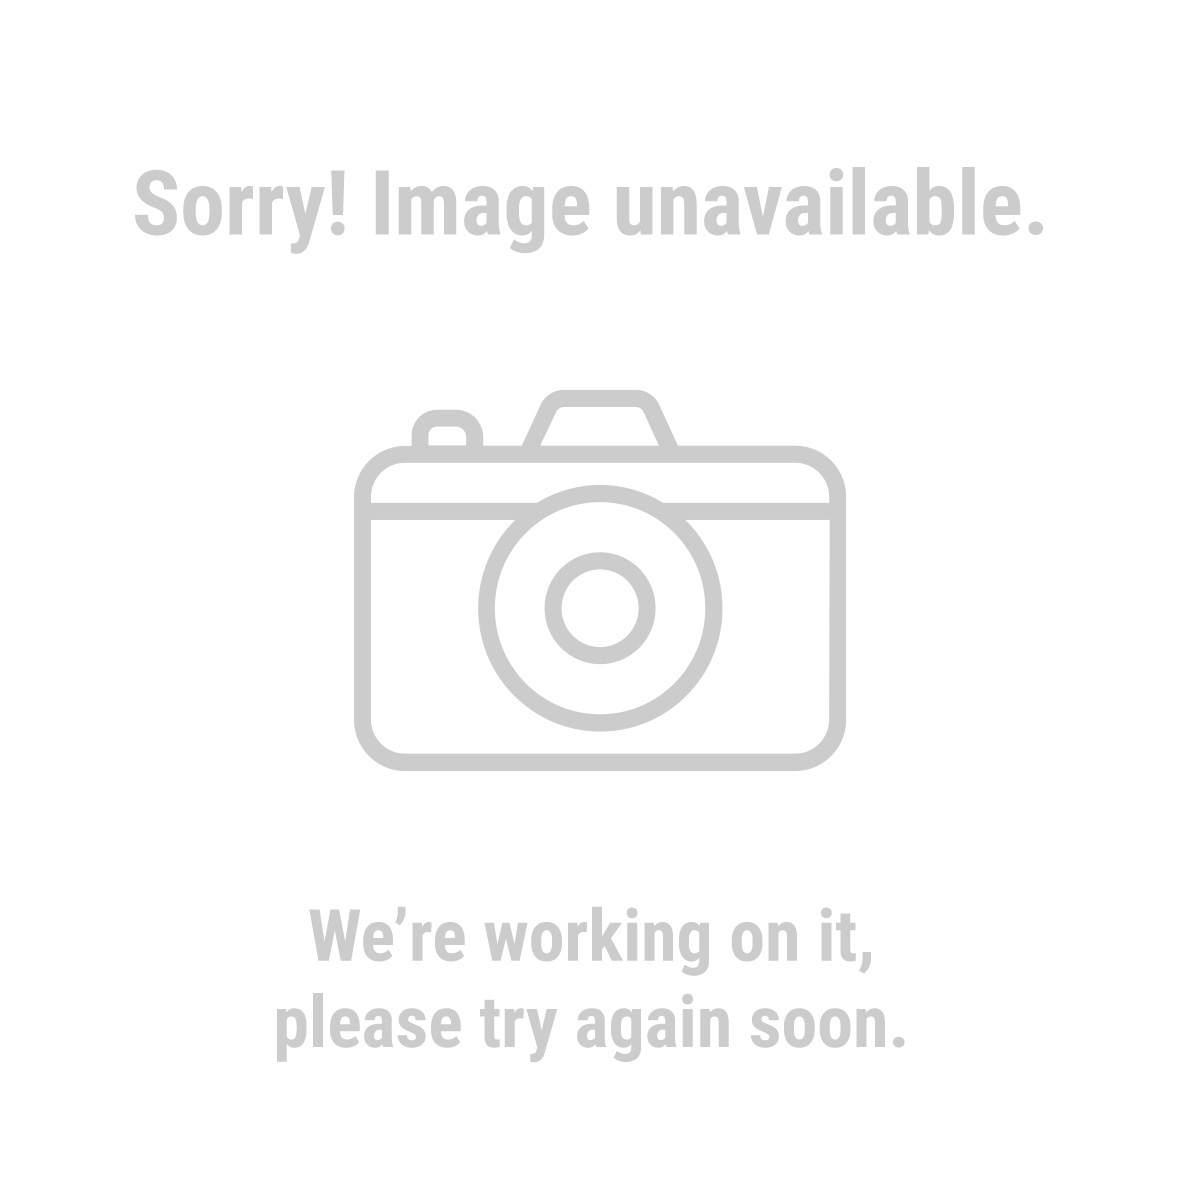 Drill Master 93083 Pack of 10 High Speed Steel Titanium Nitride Drill Bits